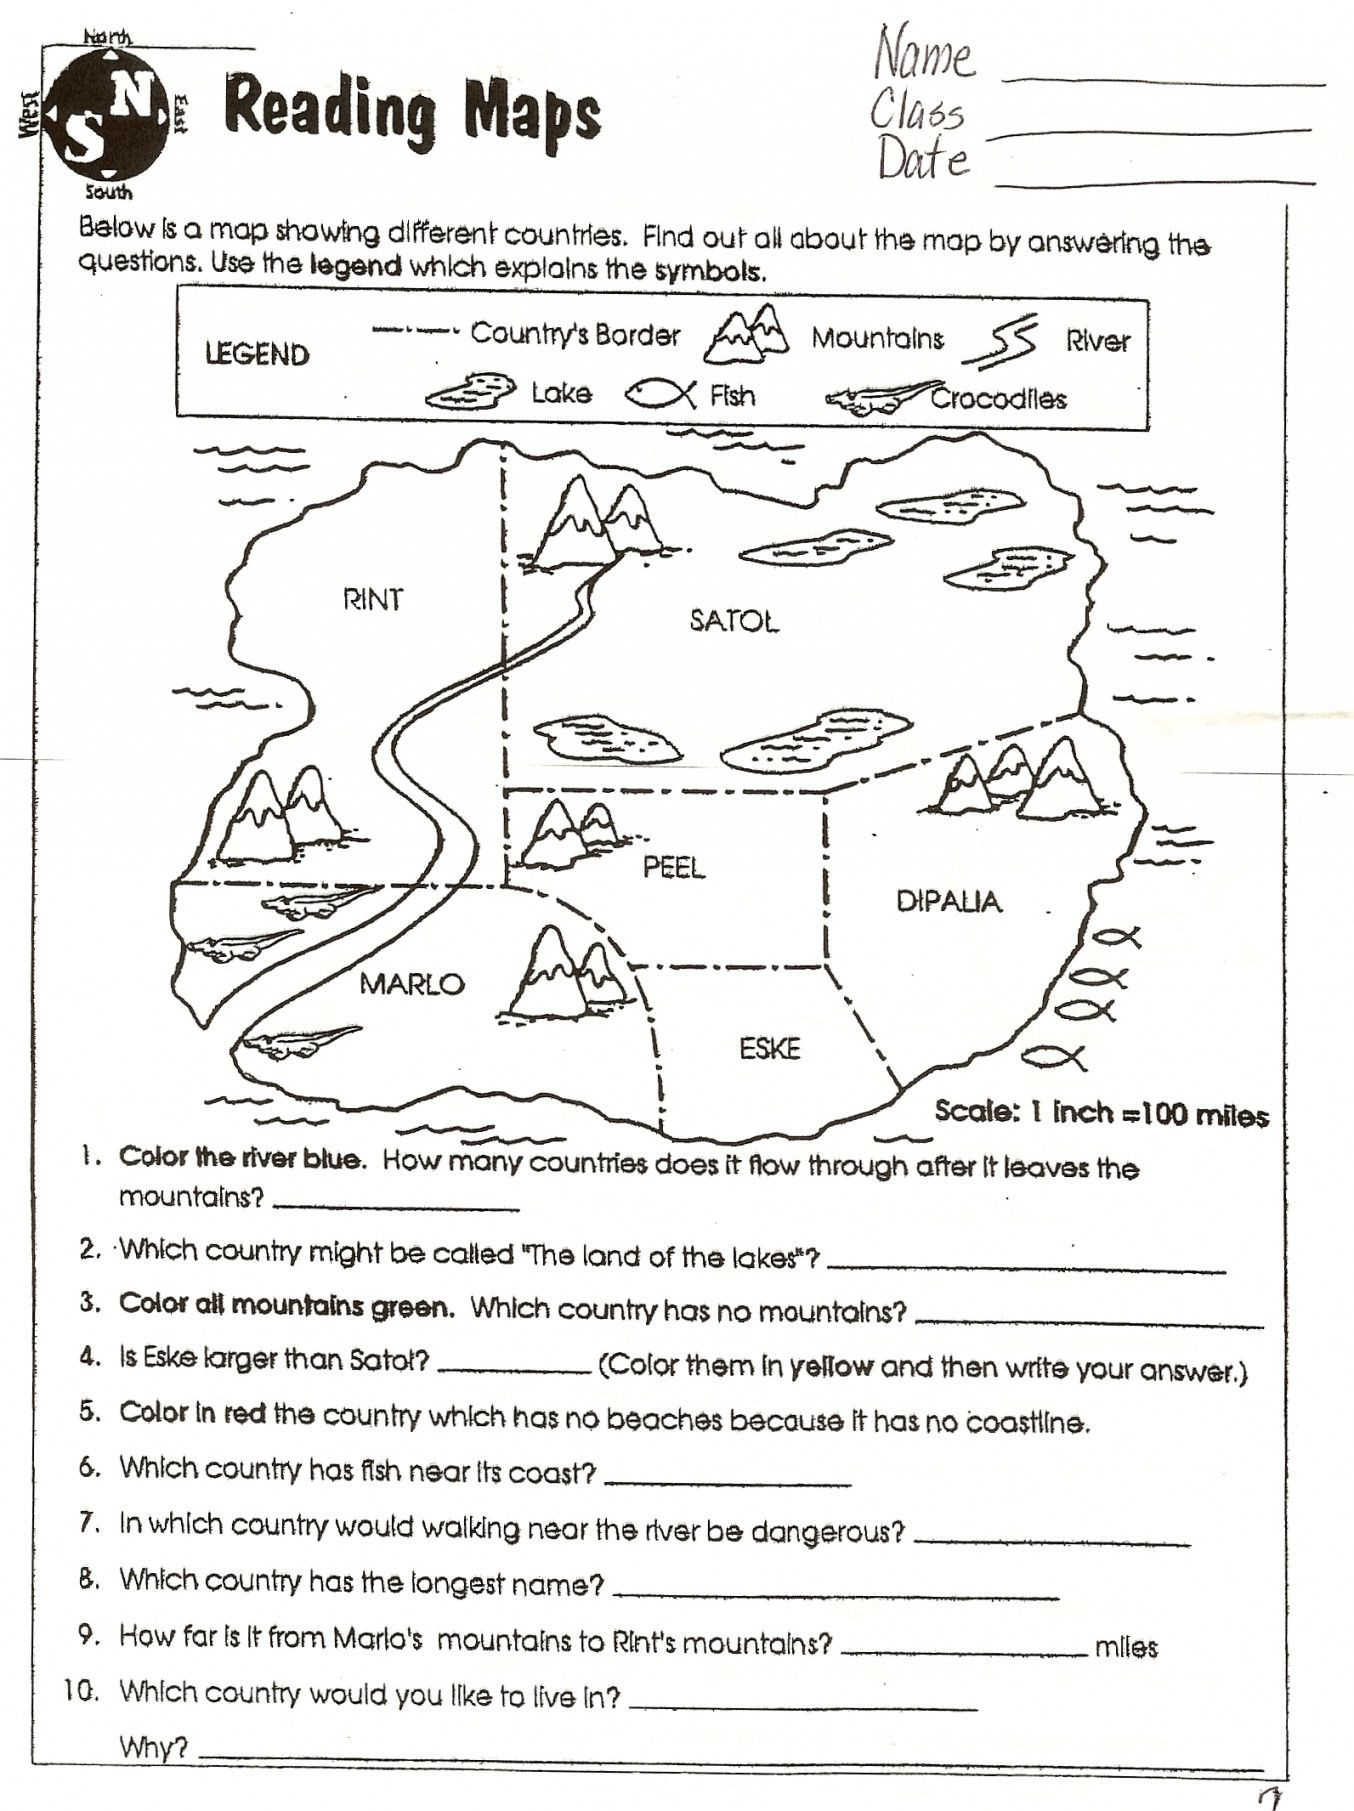 Map Skills Worksheets Middle School Map Skills Worksheets to Printable 5th Grade Middle School